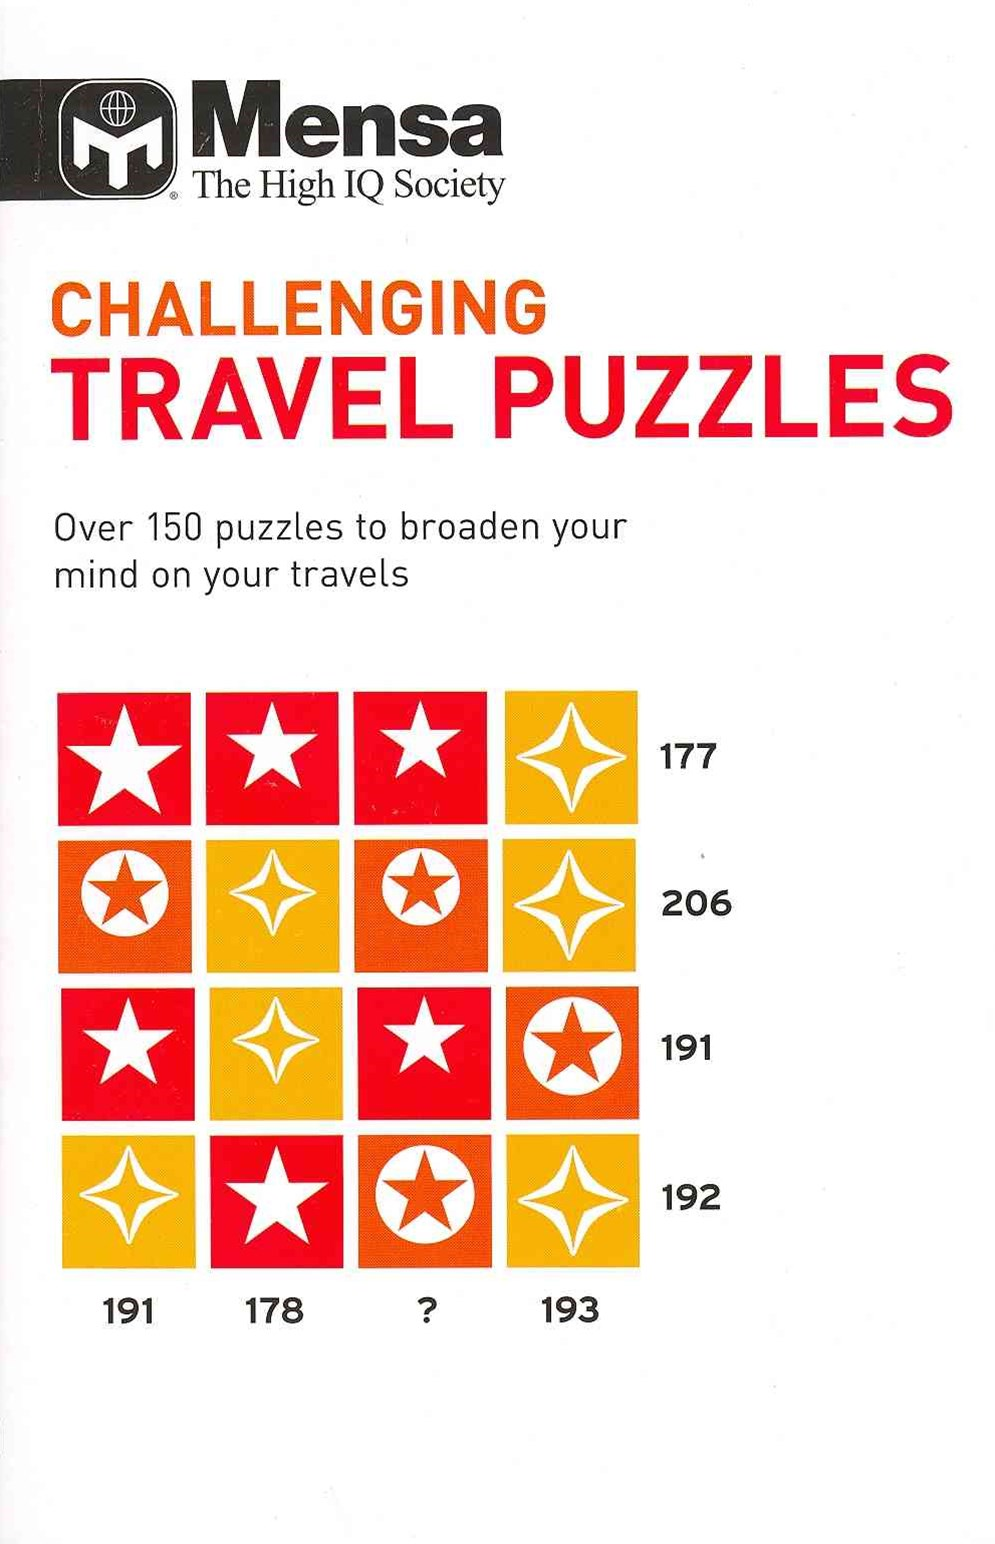 Mensa Challenging Travel Puzzles